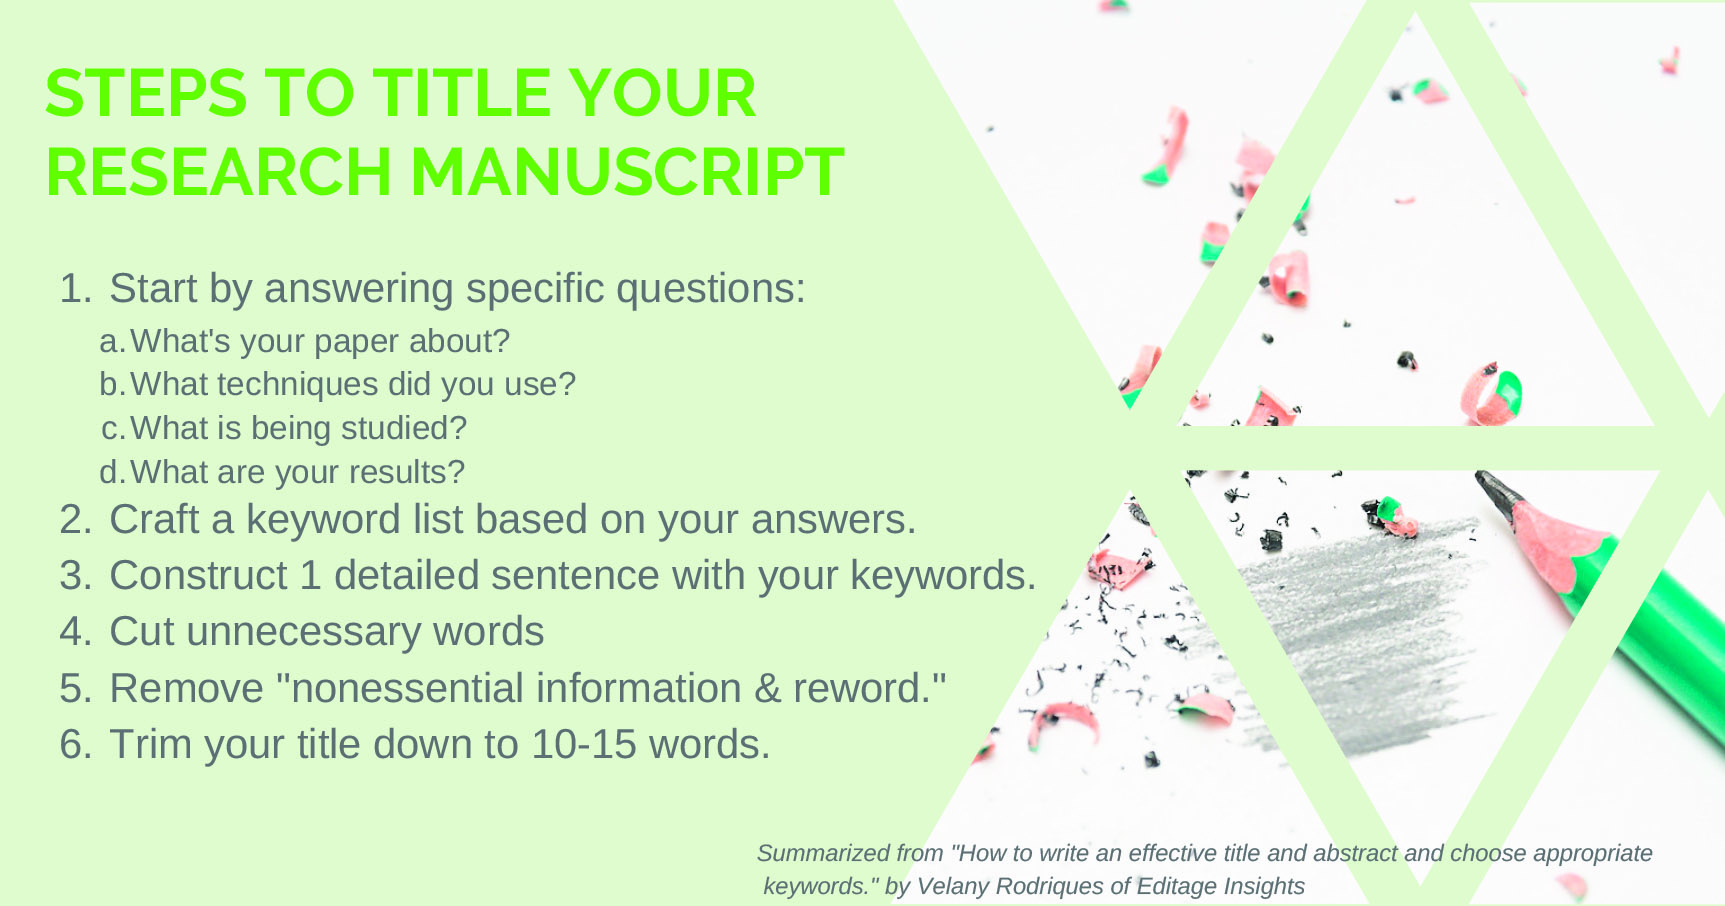 5 Ways to Dramatically Improve your Research Manuscript Title and